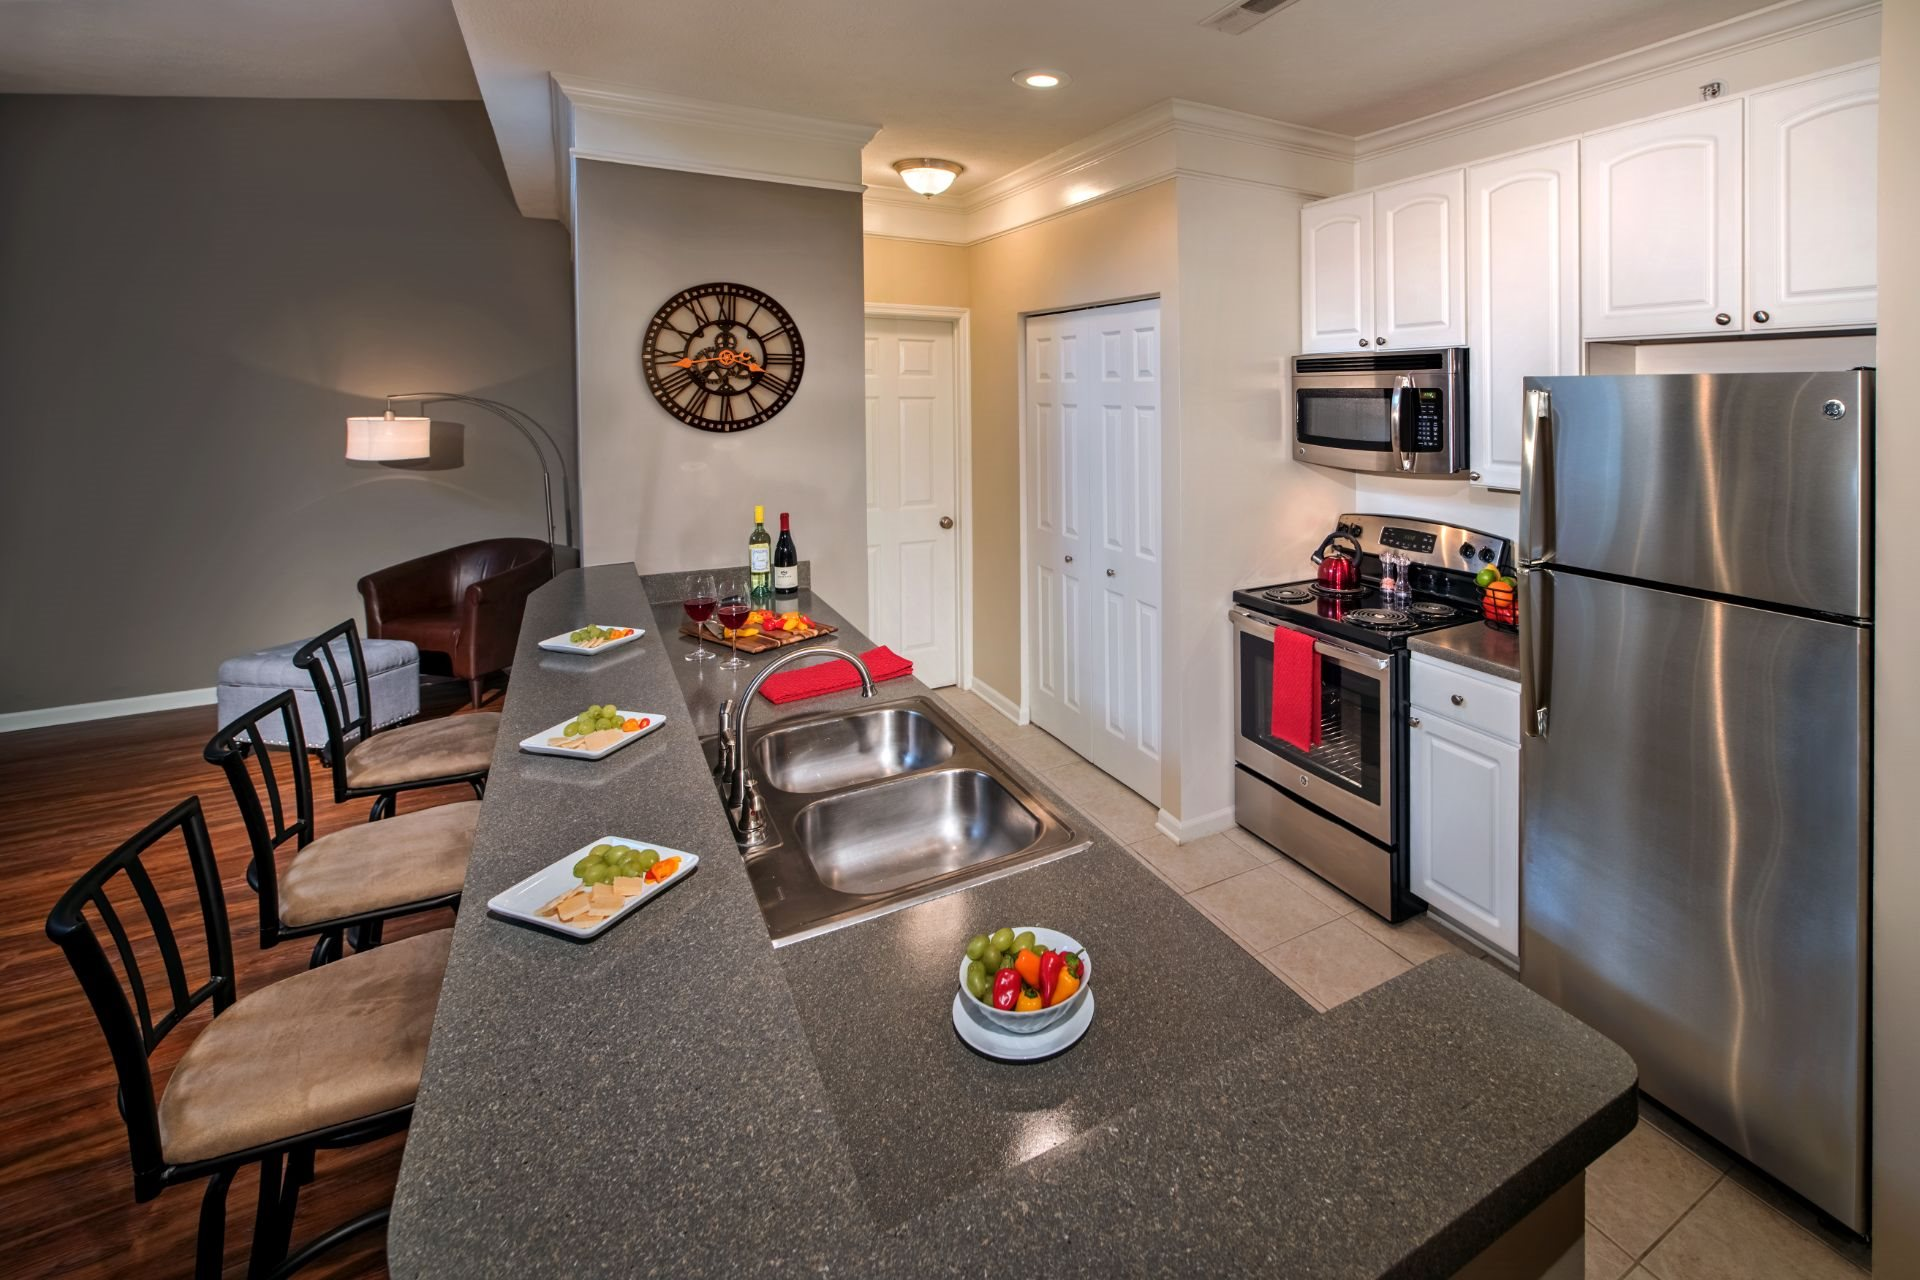 Luxury 1, 2 and 3 Bedroom Apartments and Townhomes with Open-Concept,  Gourmet Kitchens, Stainless Appliances, Washer Dryer, and River Views,   611 E. Waterfront Drive, Munhall, PA 15120-The Waterfront